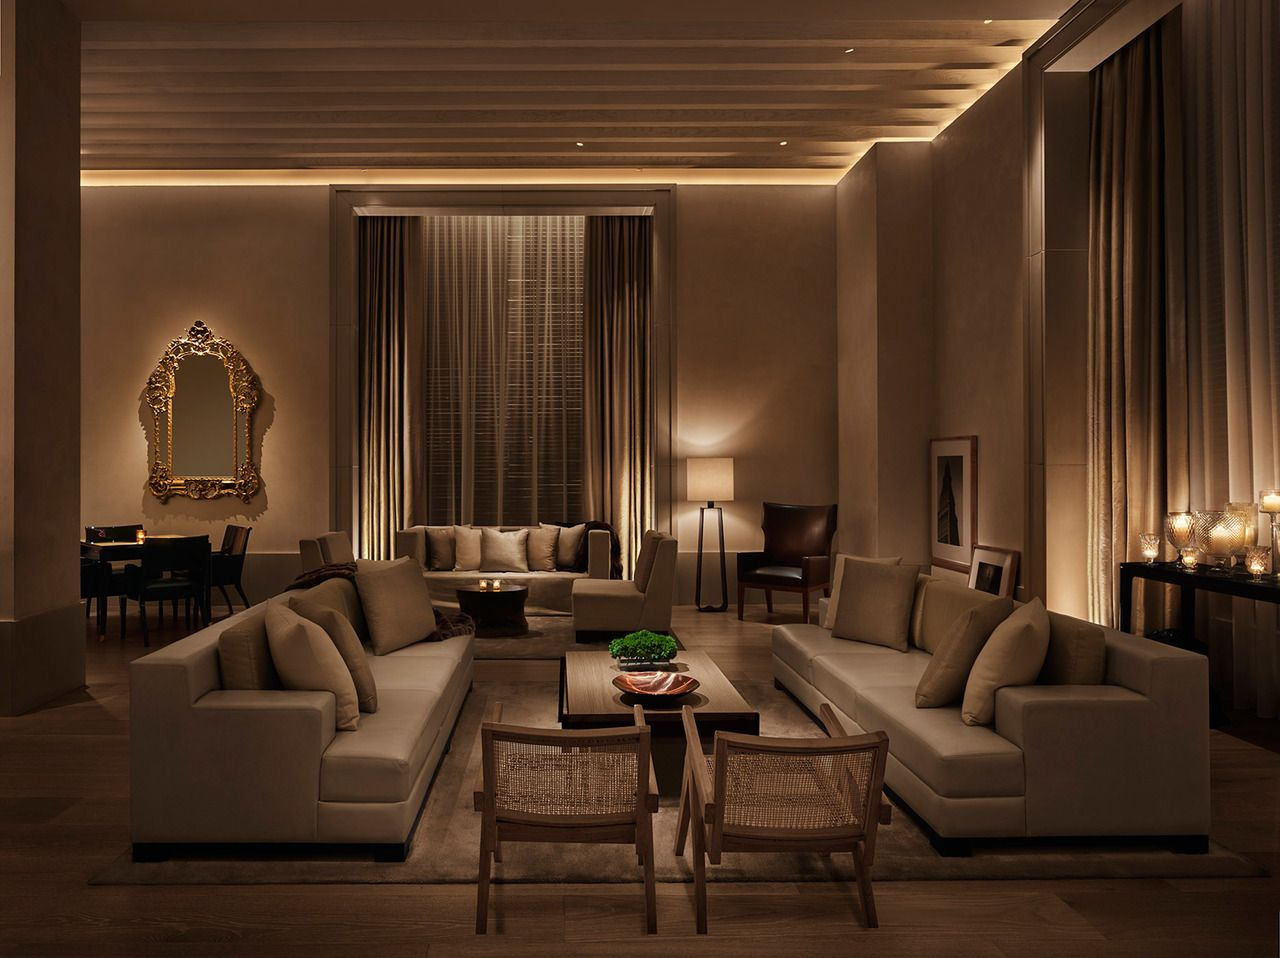 The New York Edition Hotel By Ian Schrager Designed By The